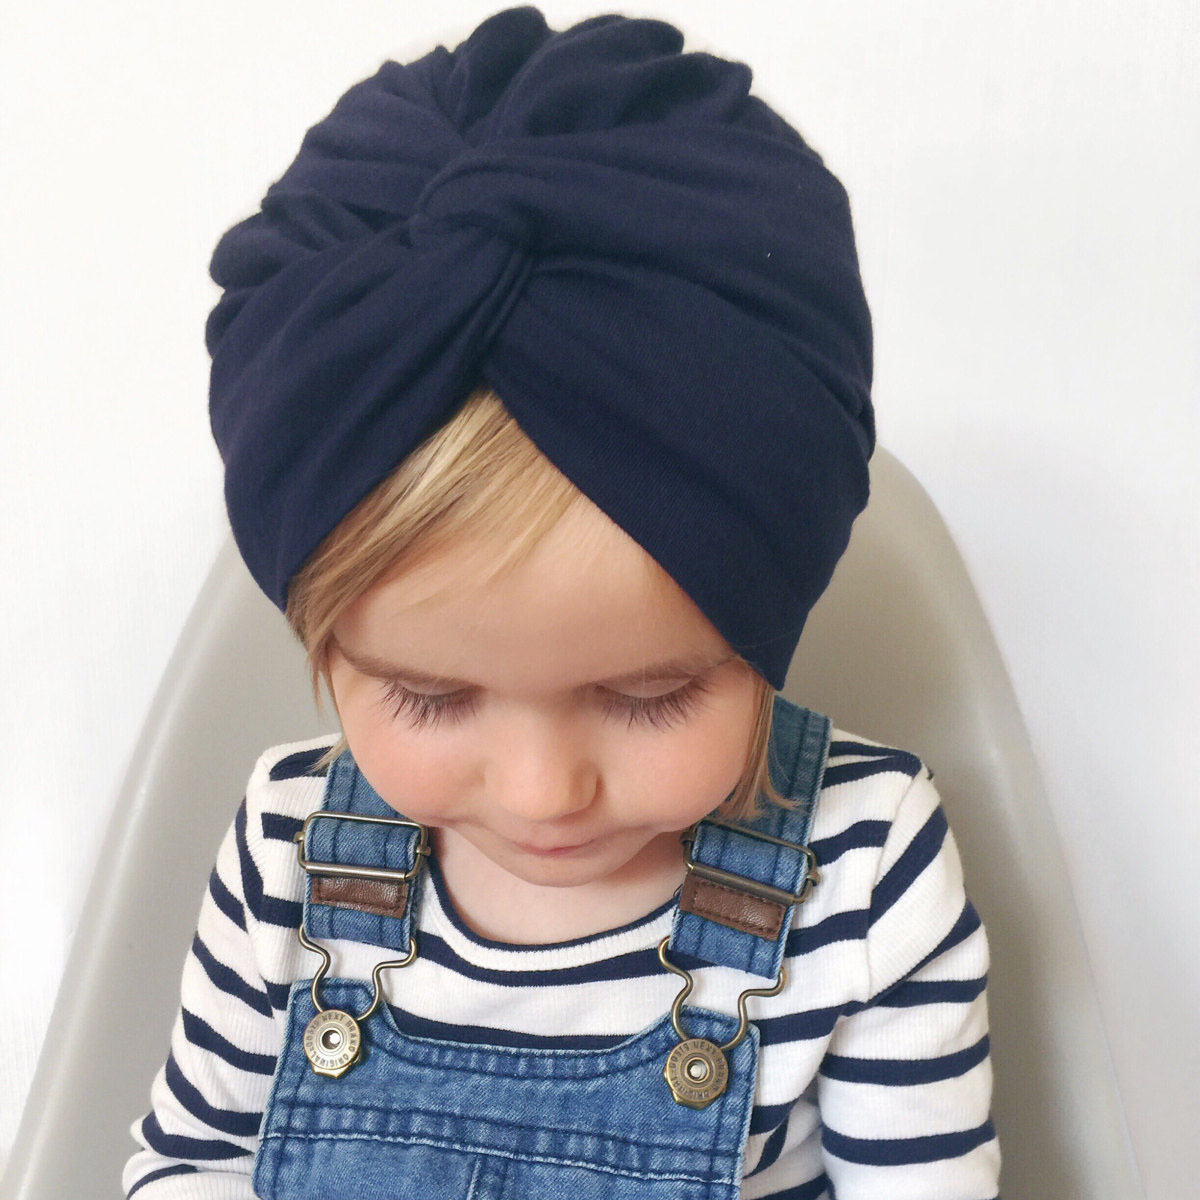 New Baby Girls Knitted Cotton Hat Baby   Beanies   Children Cotton Soft Cute Turban Hat Cap   Skullies     Beanies   Accessories